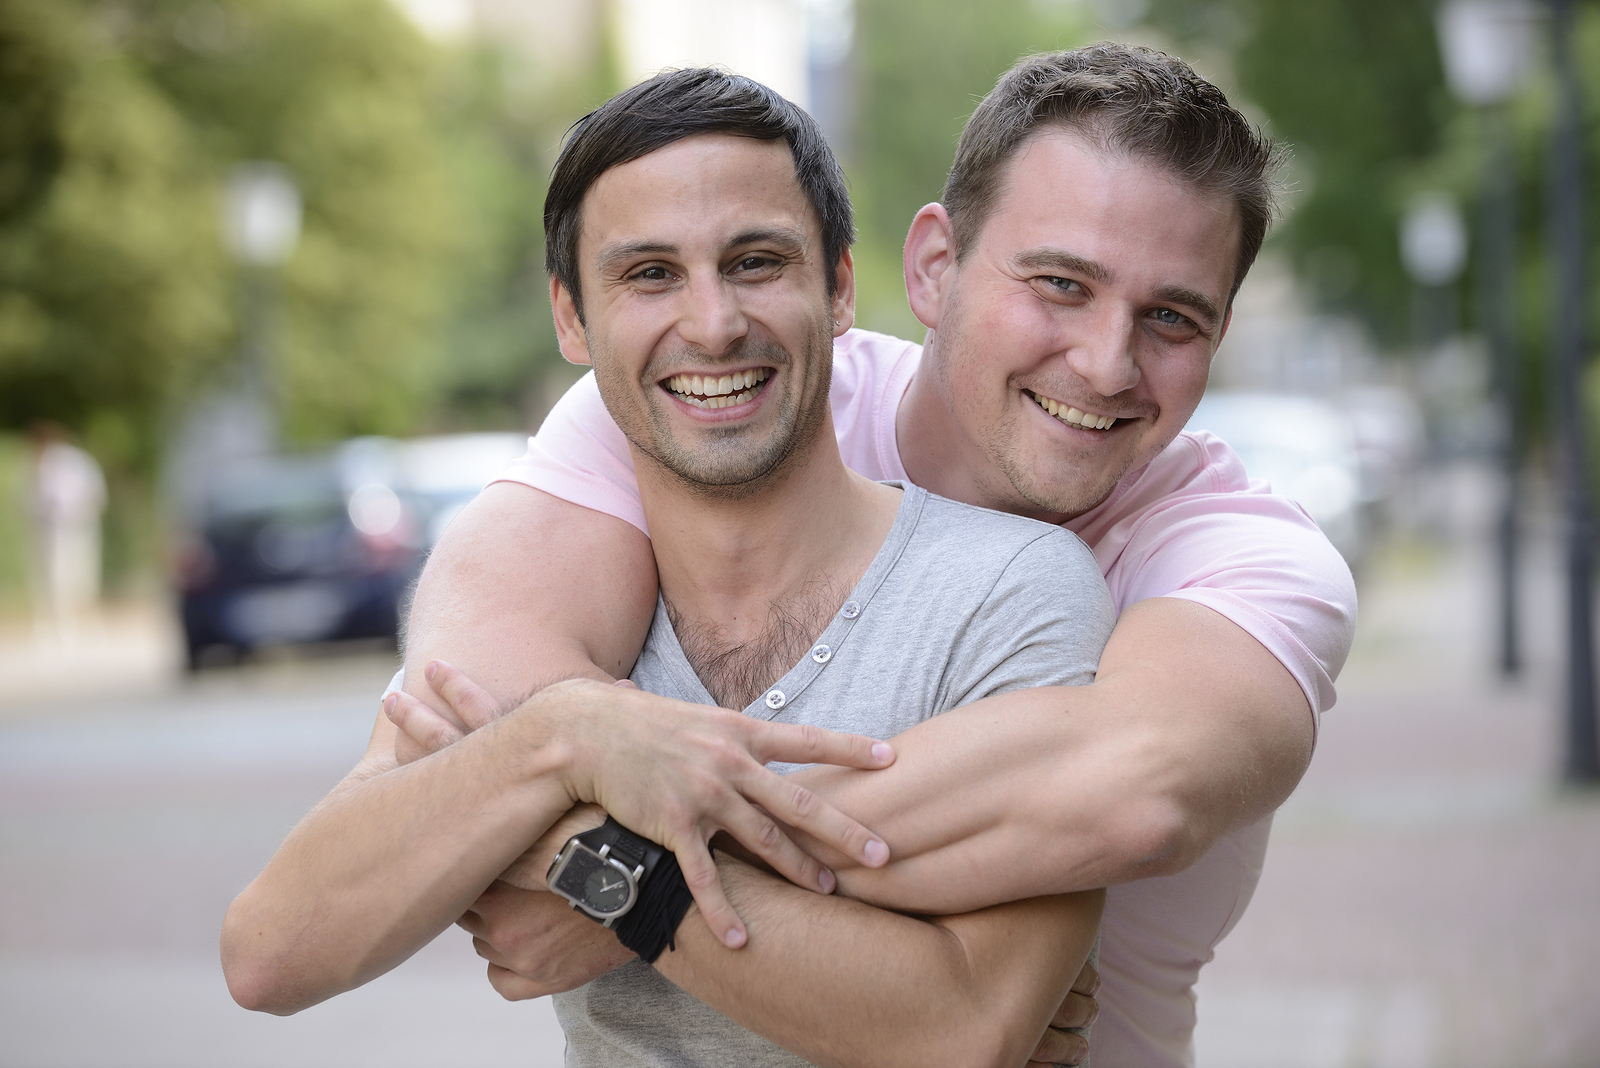 Free gay dating sites for serious relationships in india